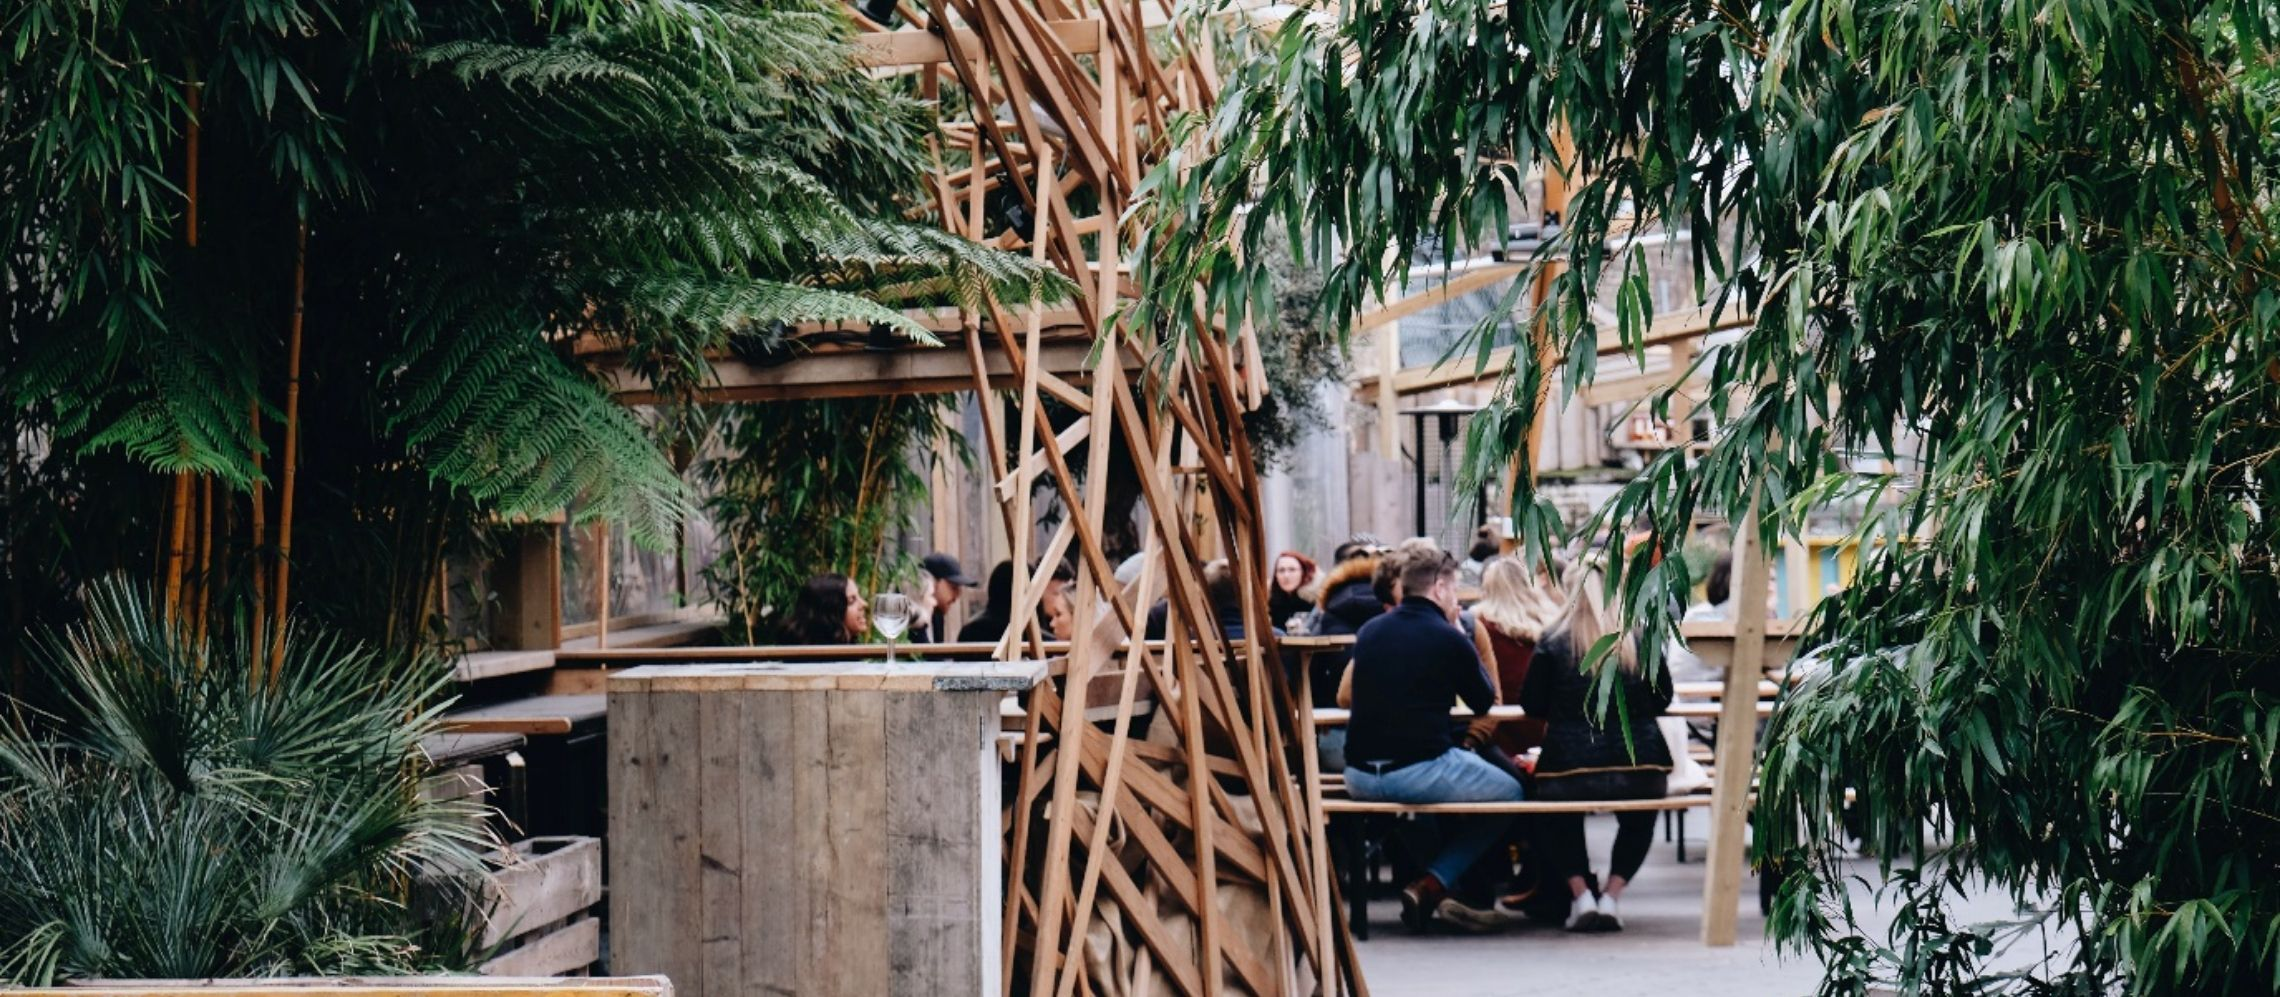 Photo for: London's Best Outdoor Bars & Restaurants To Check Out during Covid-19 Times